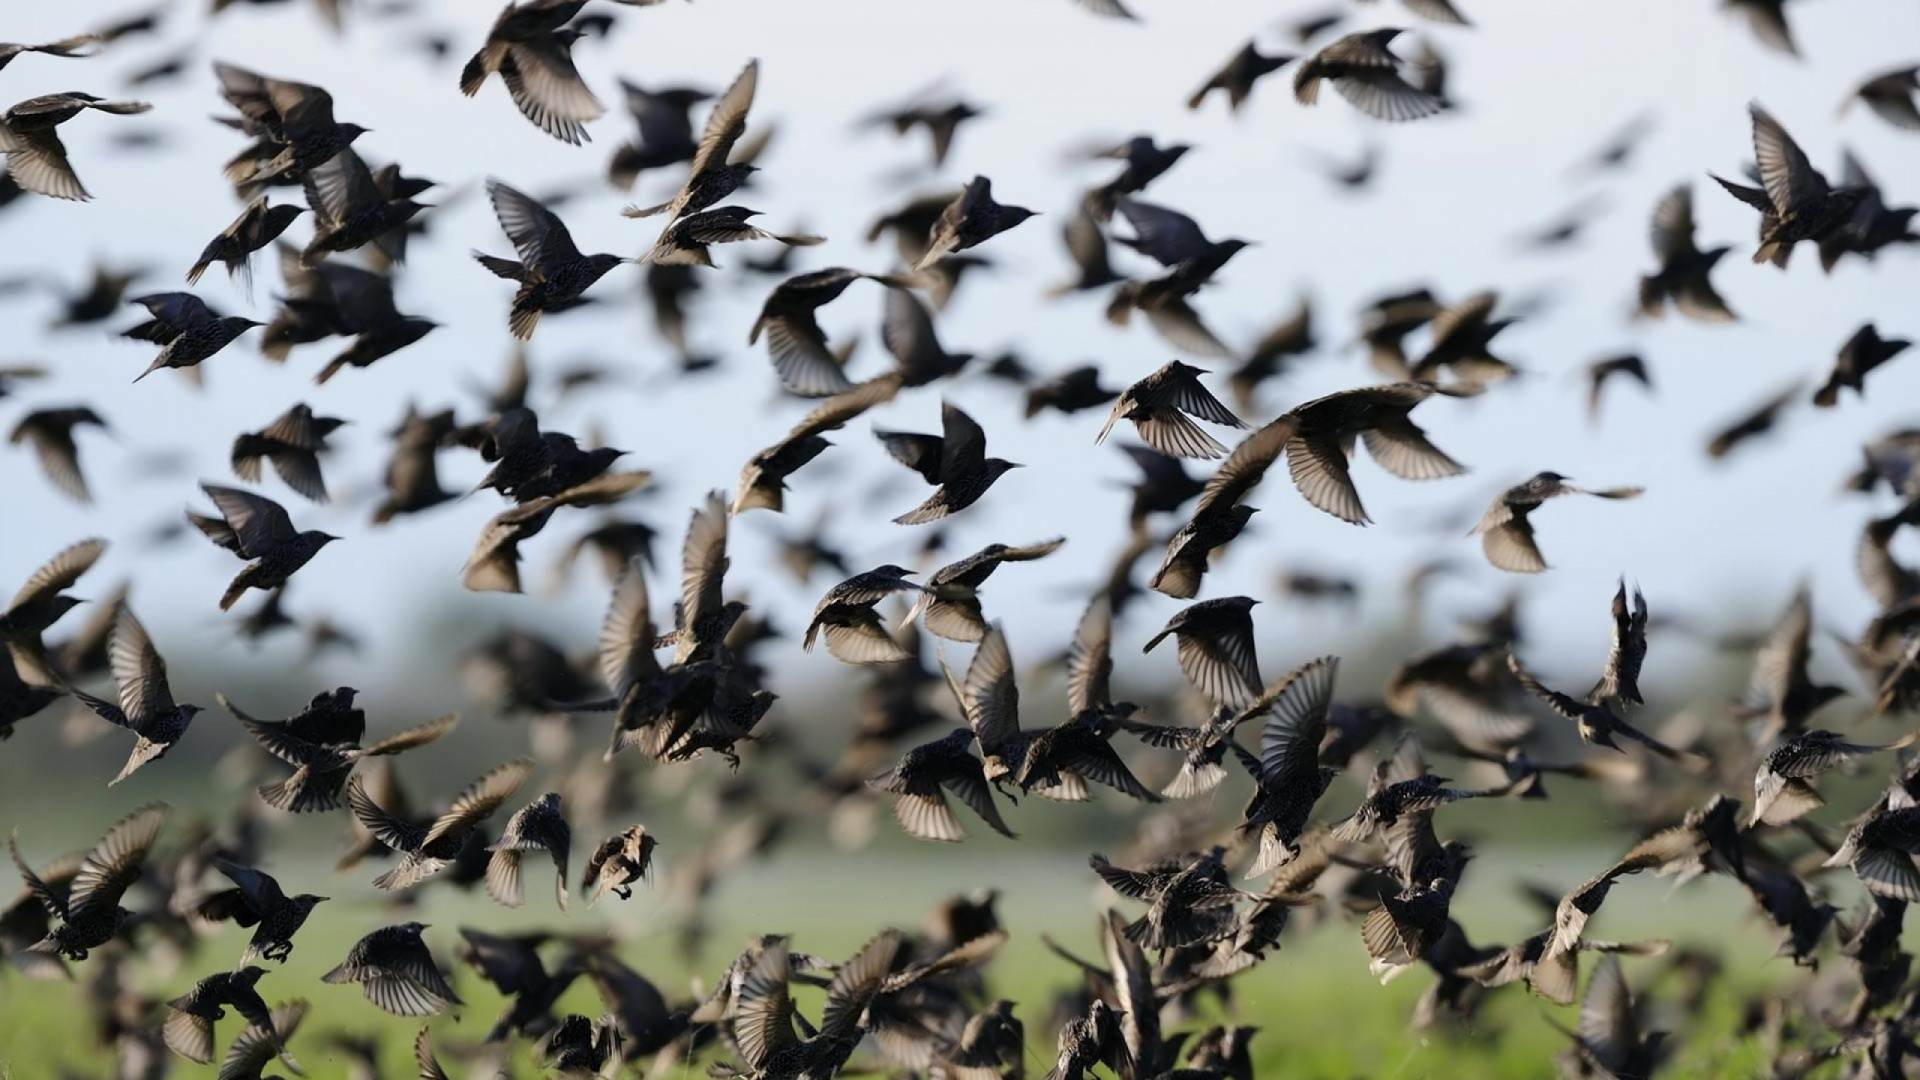 Many Starlings